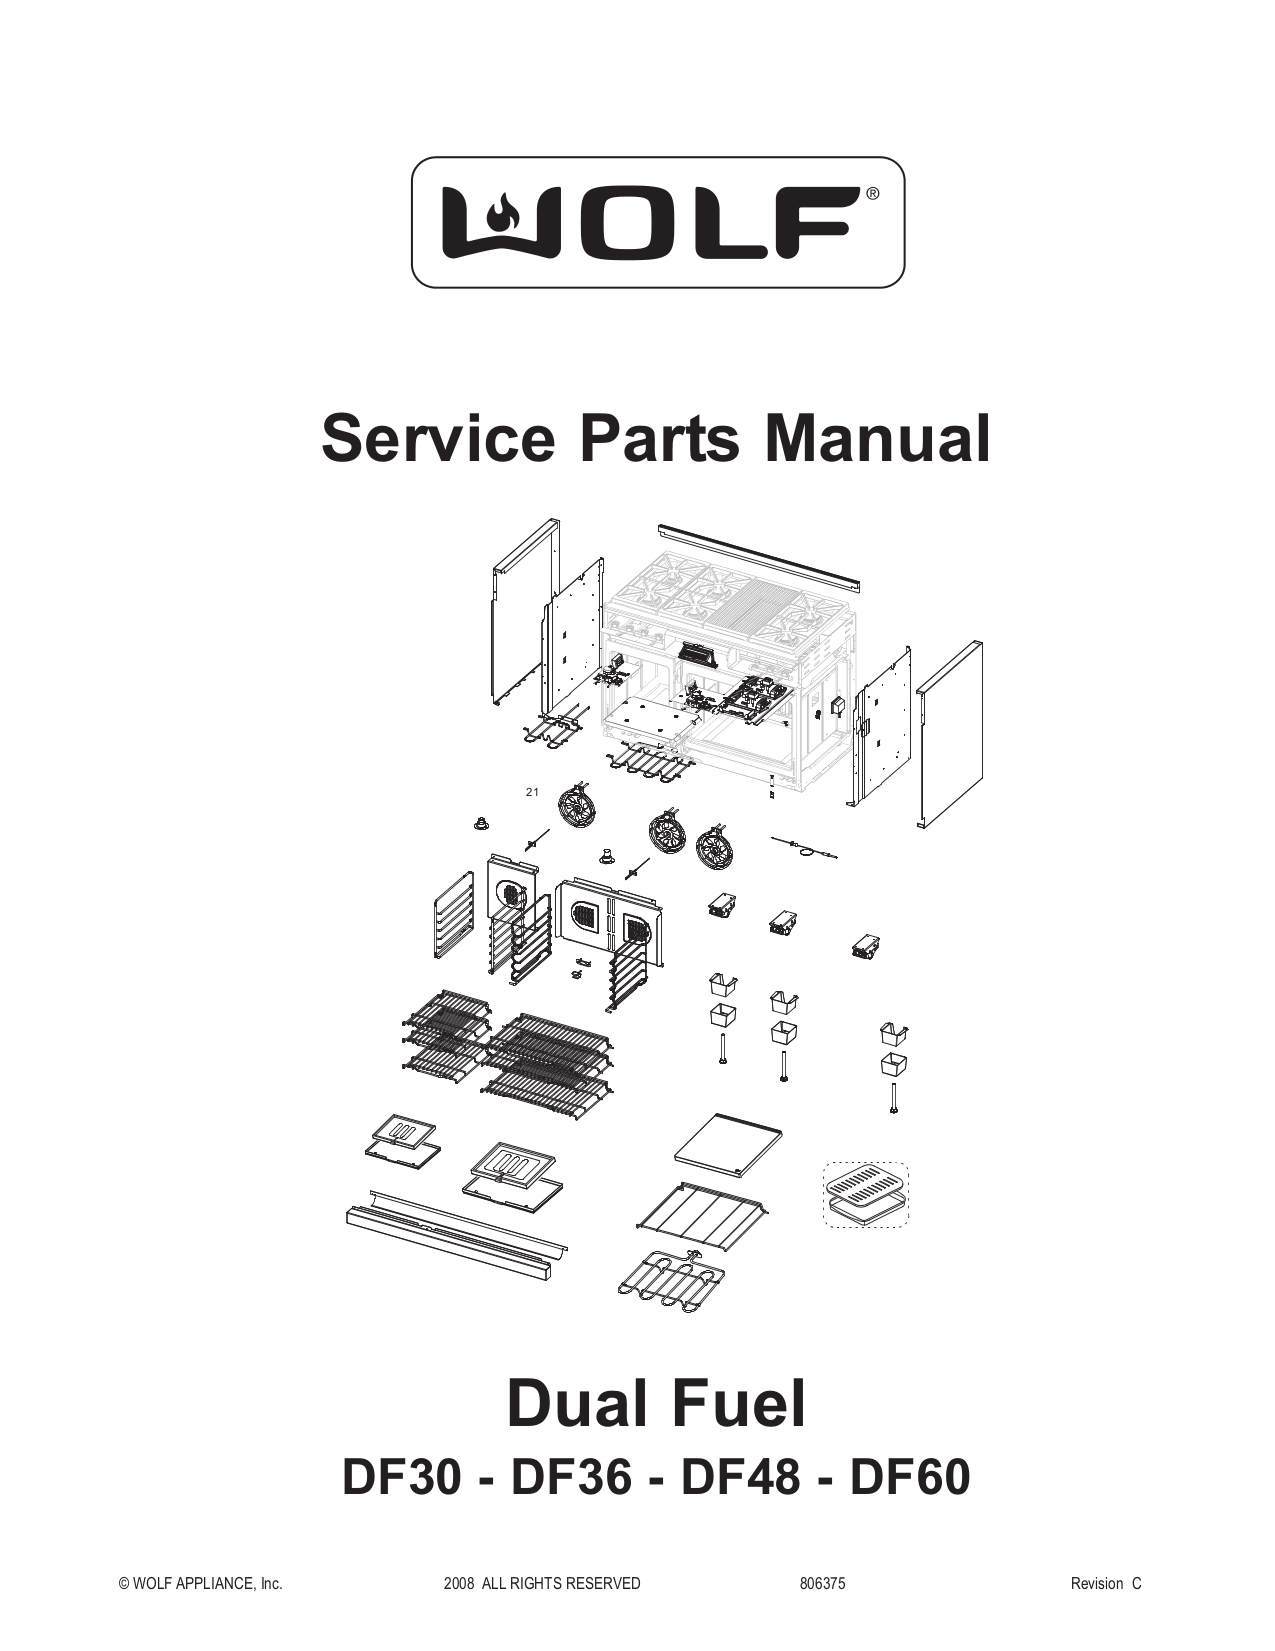 Download free pdf for Wolf DF484DG Range manual